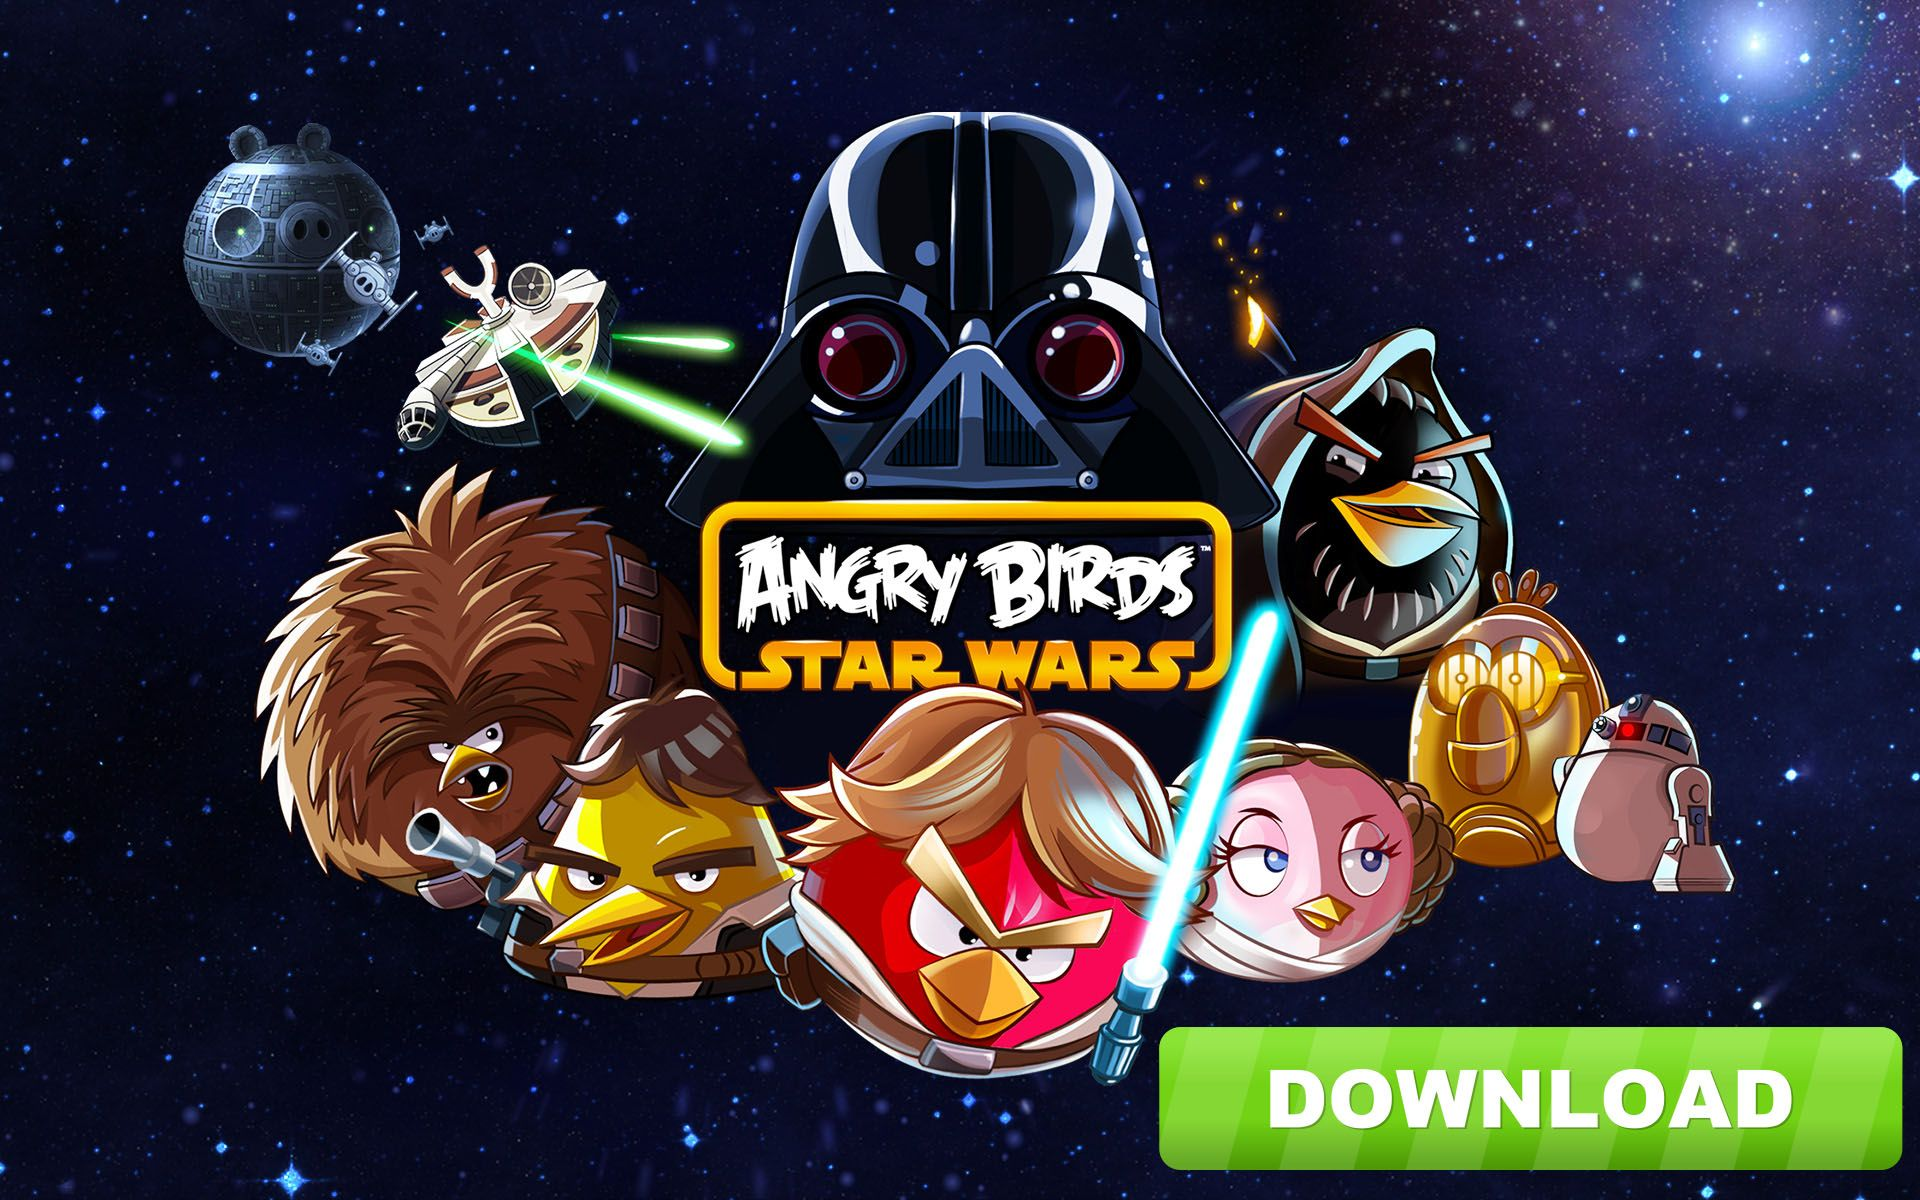 Angry Birds Star Wars Full Version Free Download For Pc Angry